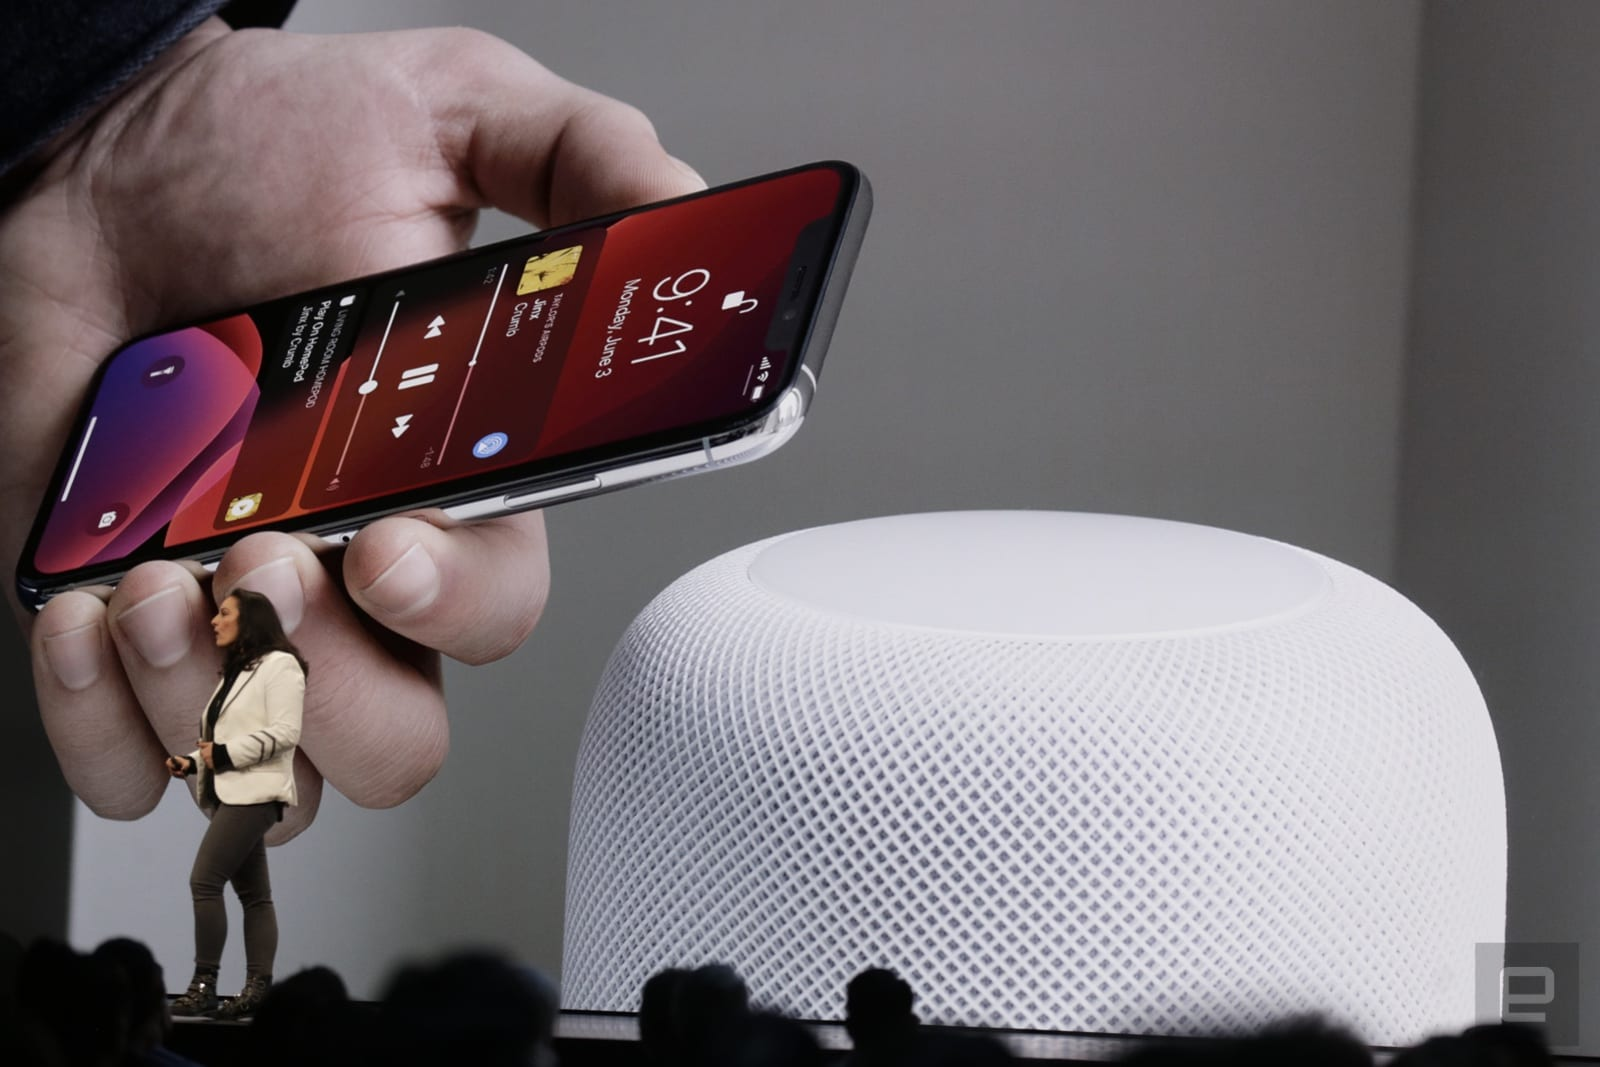 HomePod will support multiple users and music handoffs